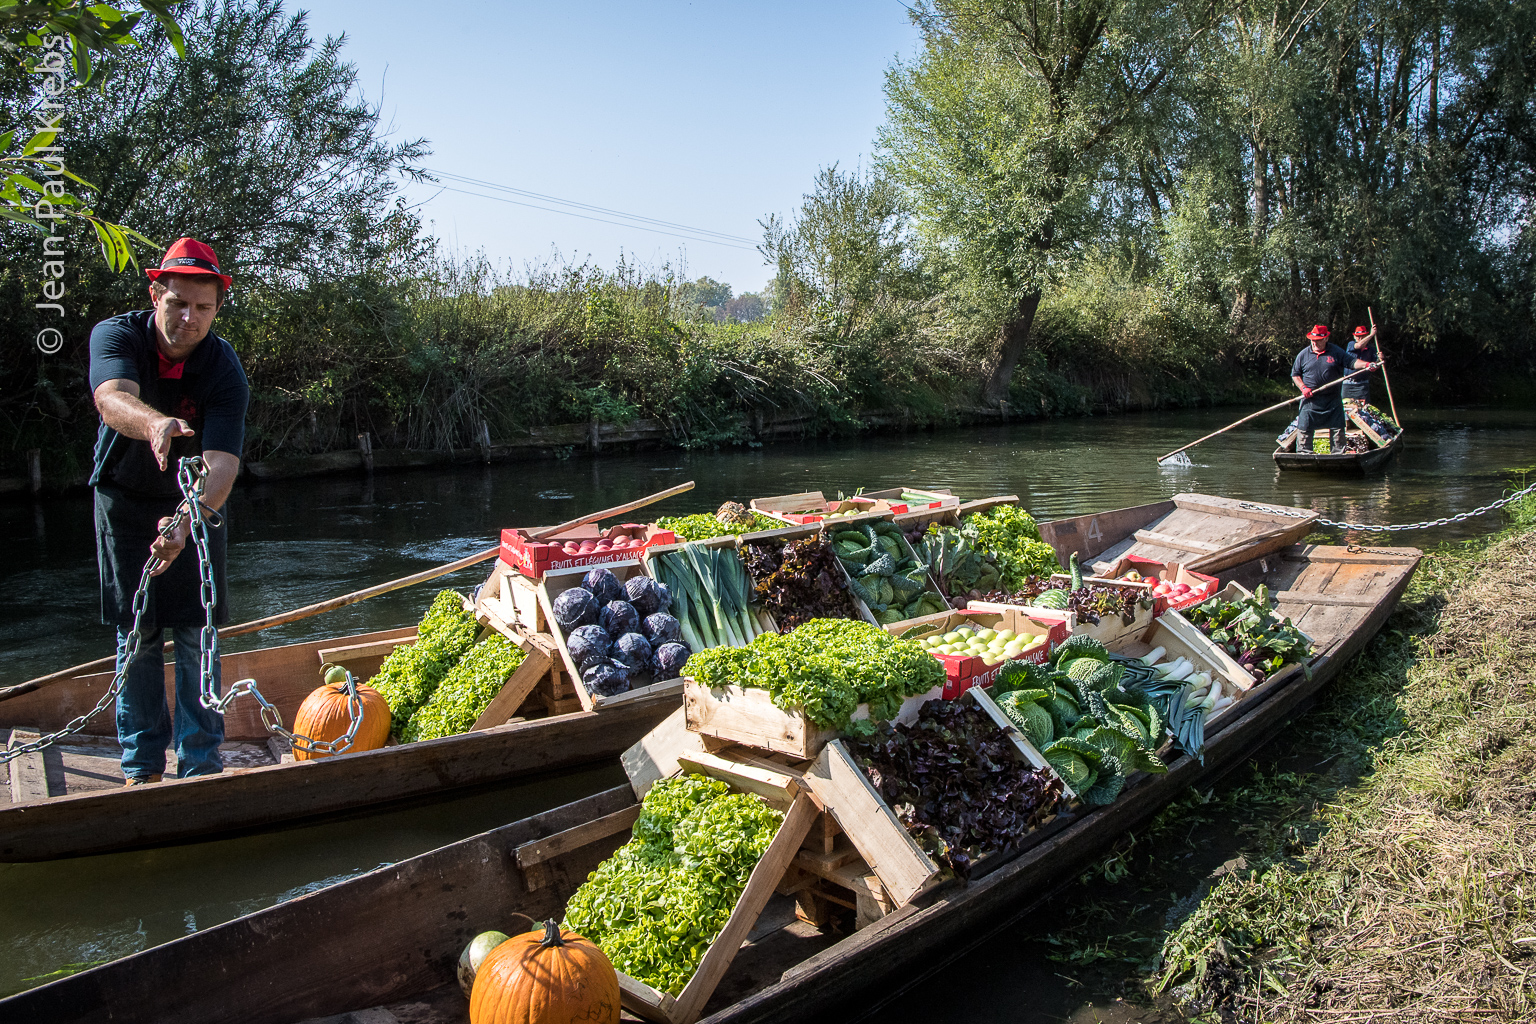 Sélestat is a famous place for vegetables. In former times they were ferried by small boats.